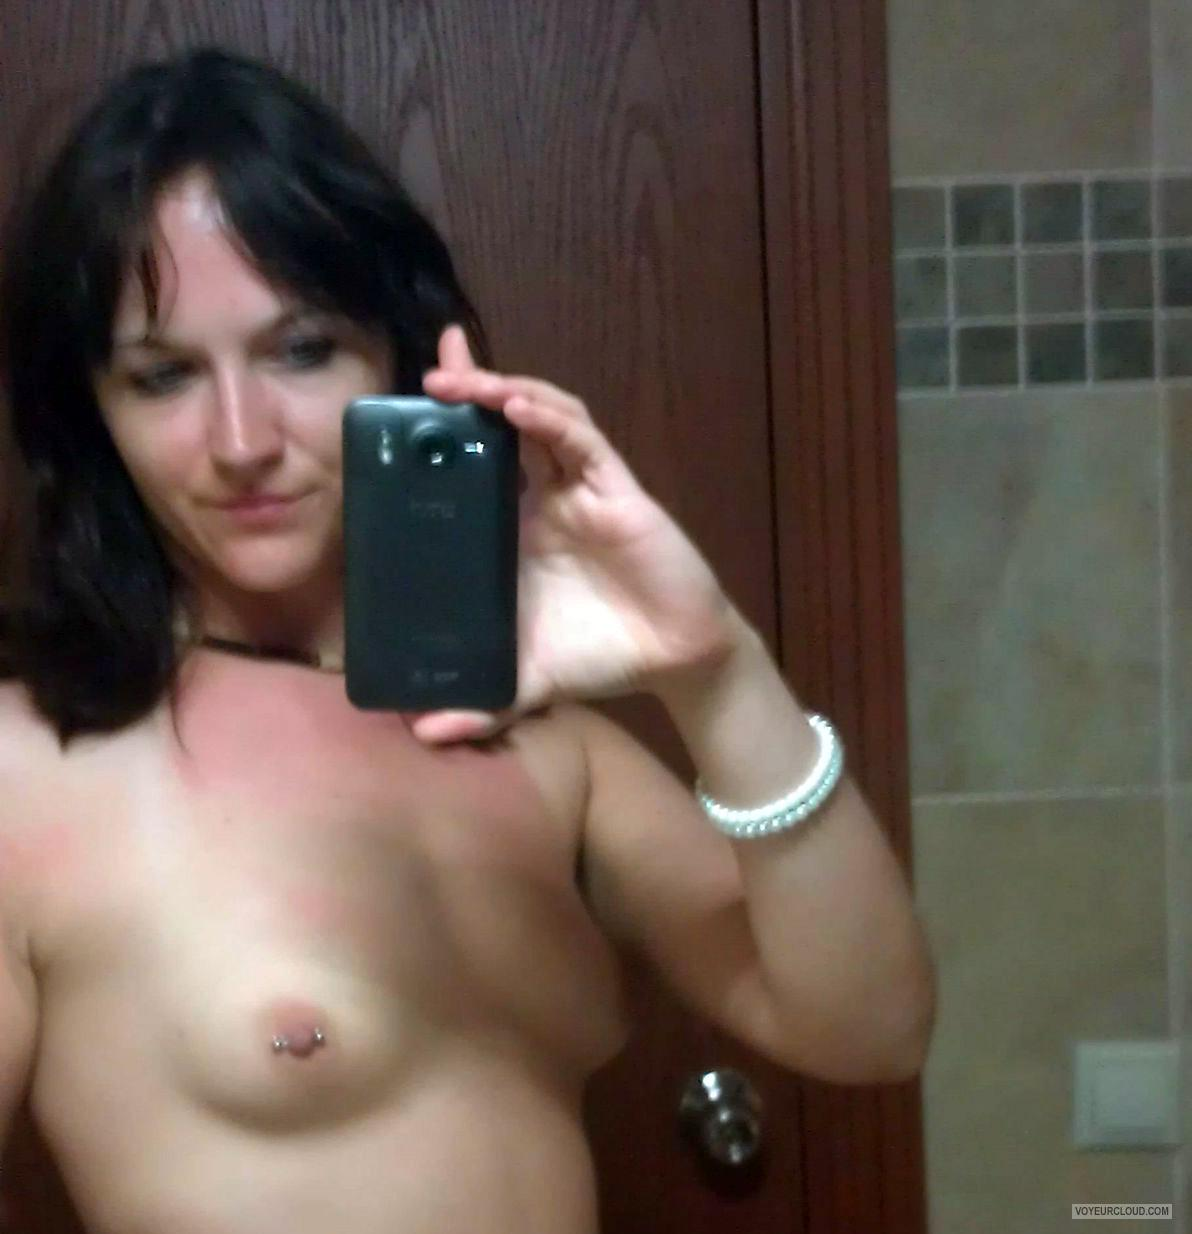 Tit Flash: My Tanlined Small Tits (Selfie) - Topless Pepsi from GermanyPierced Nipples